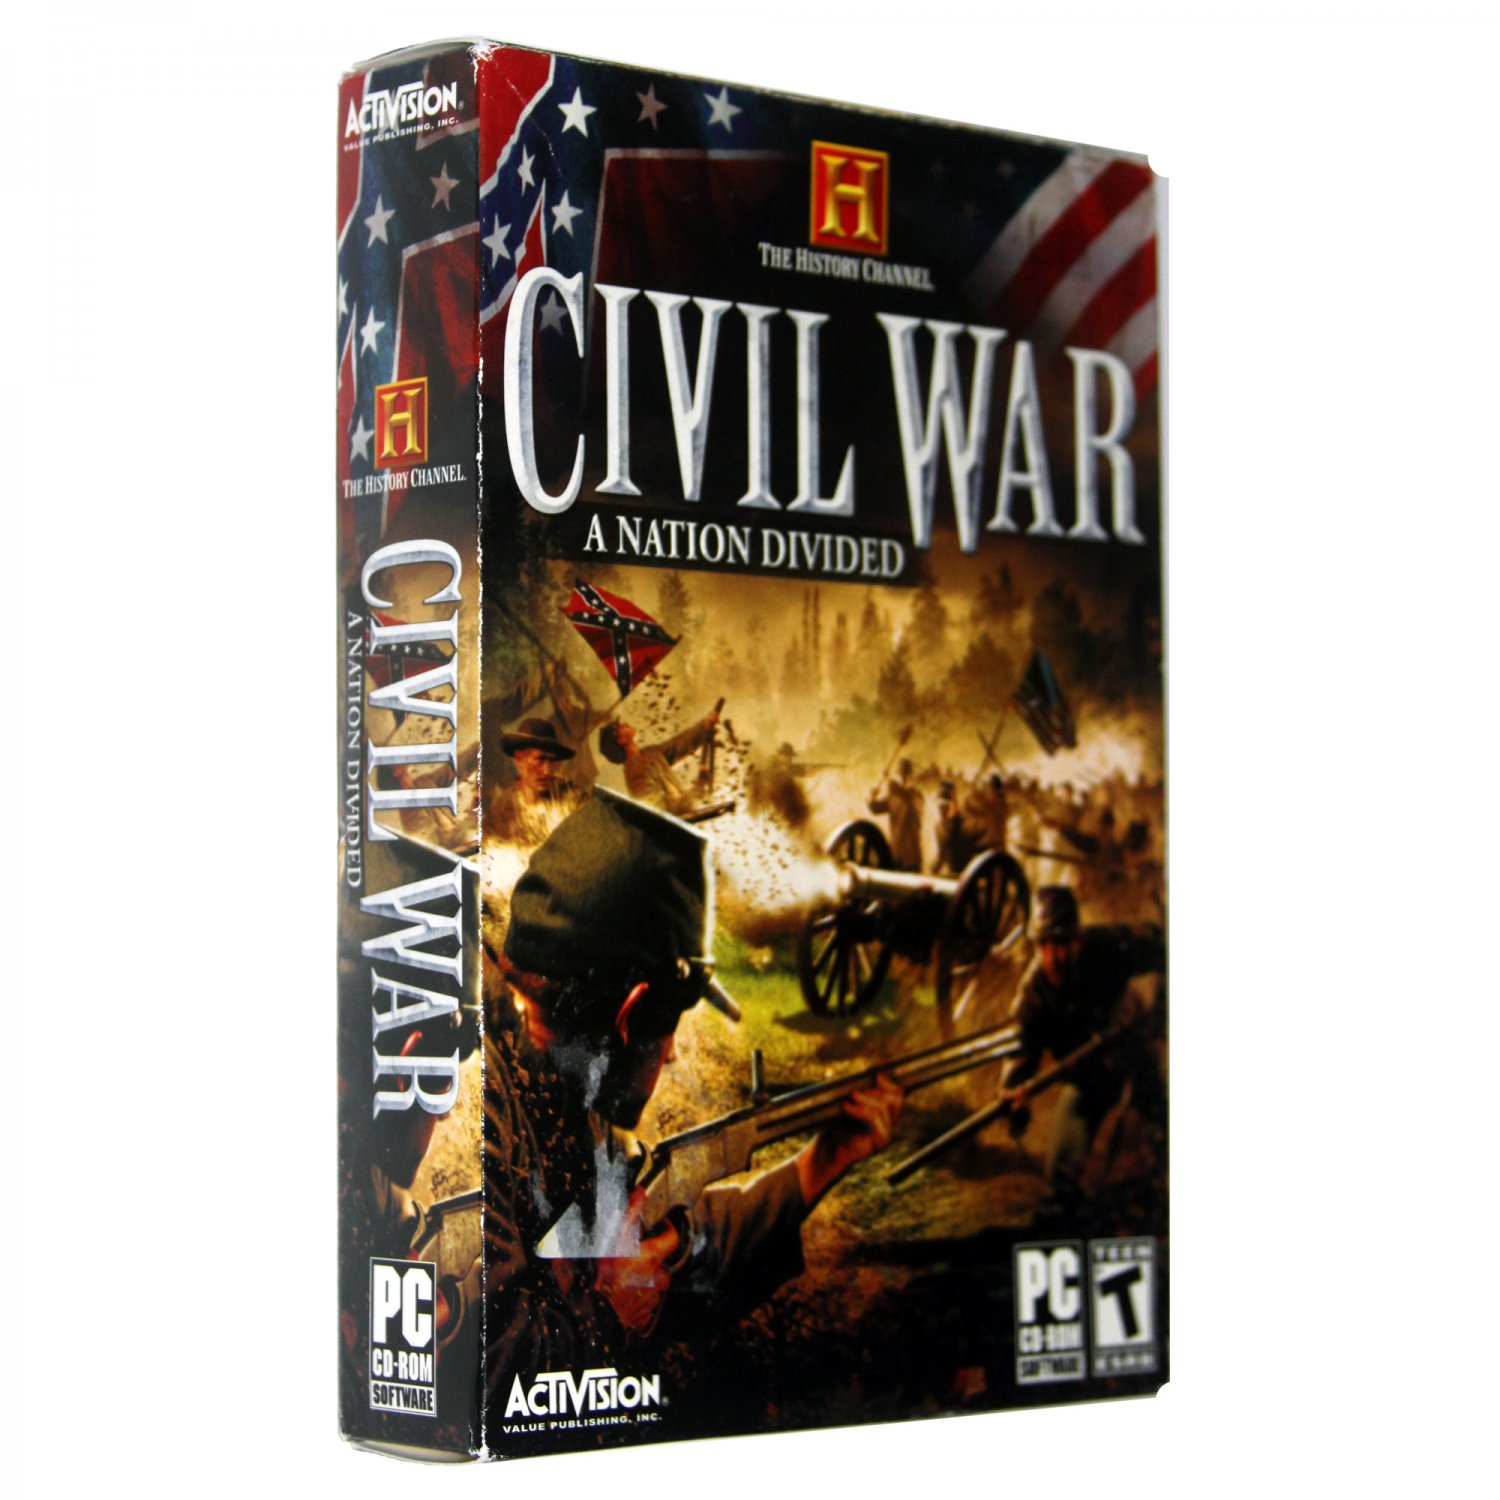 The History Channel: Civil War - A Nation Divided [PC Game]